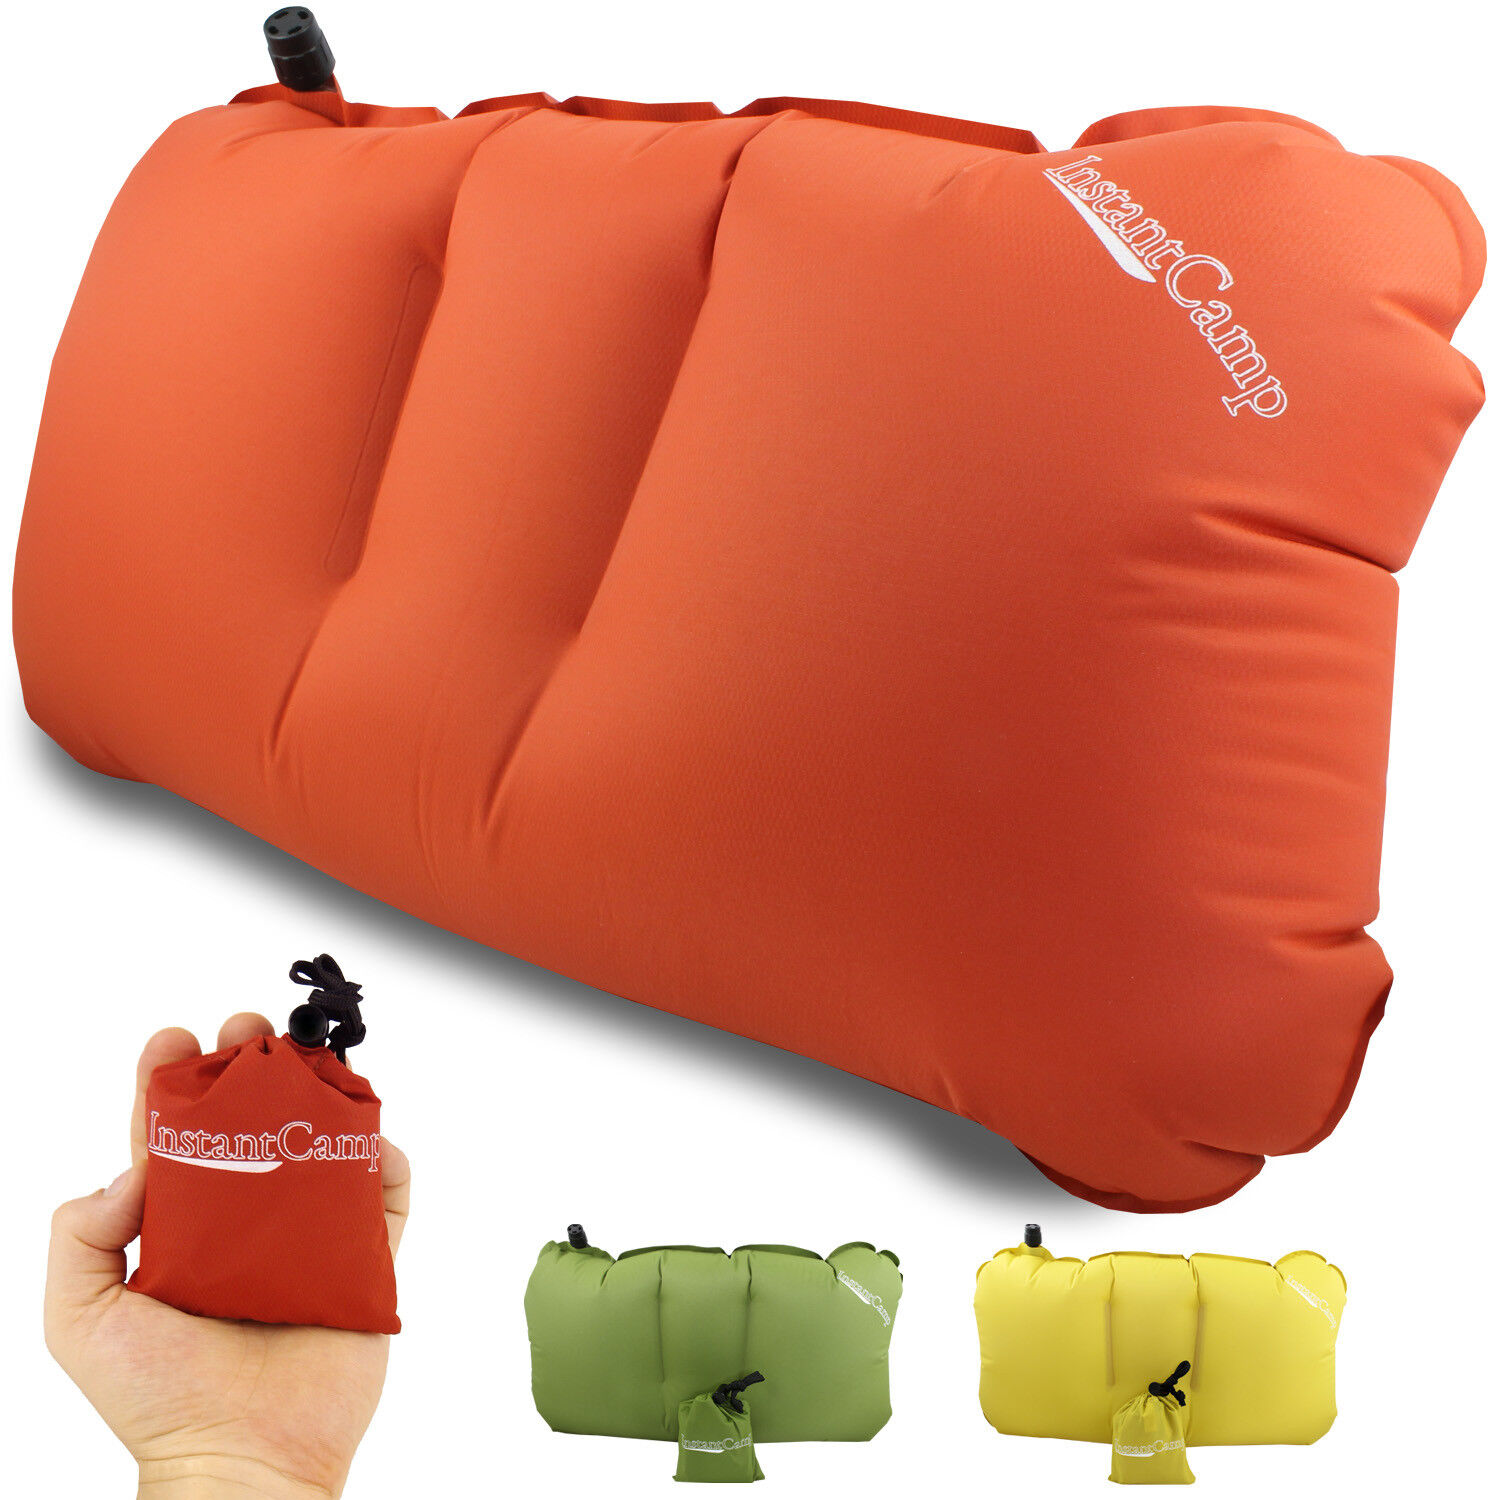 InstantCampTM 2.4 oz Ultralight Backpacking Camping Hiking Pillow - Inflatable